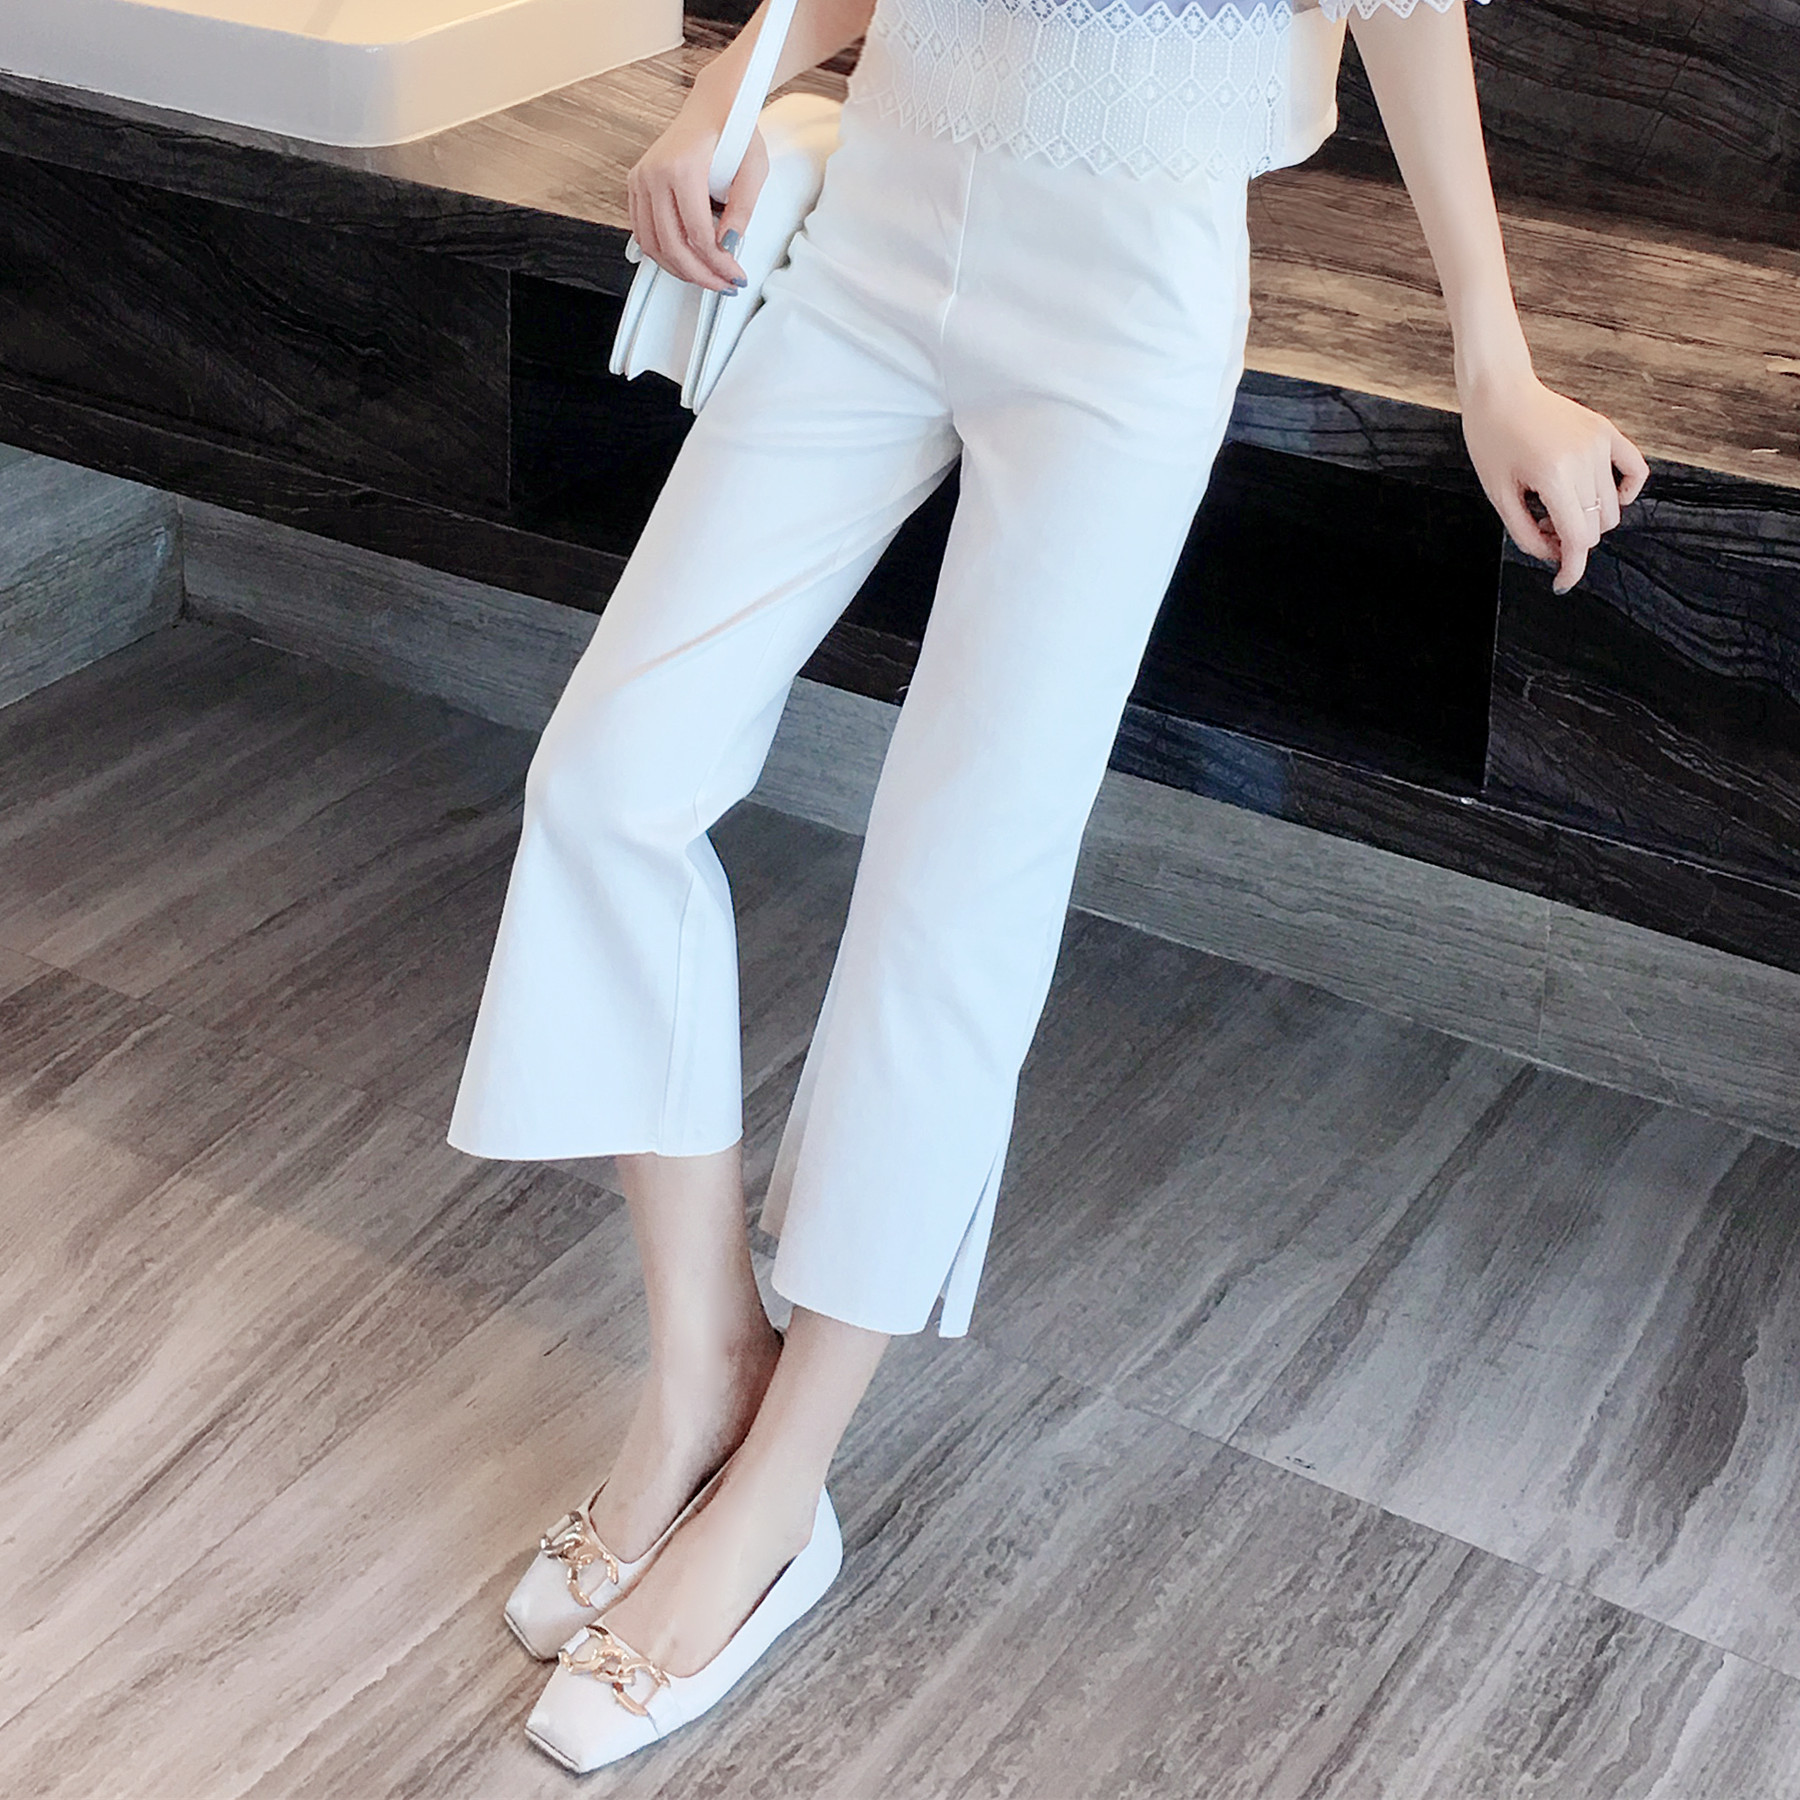 2019 Korean-style New Style High-waisted Loose   Pants   Casual   Capri     Pants   Slimming Drape   Pants   a Generation of Fat 9407-2